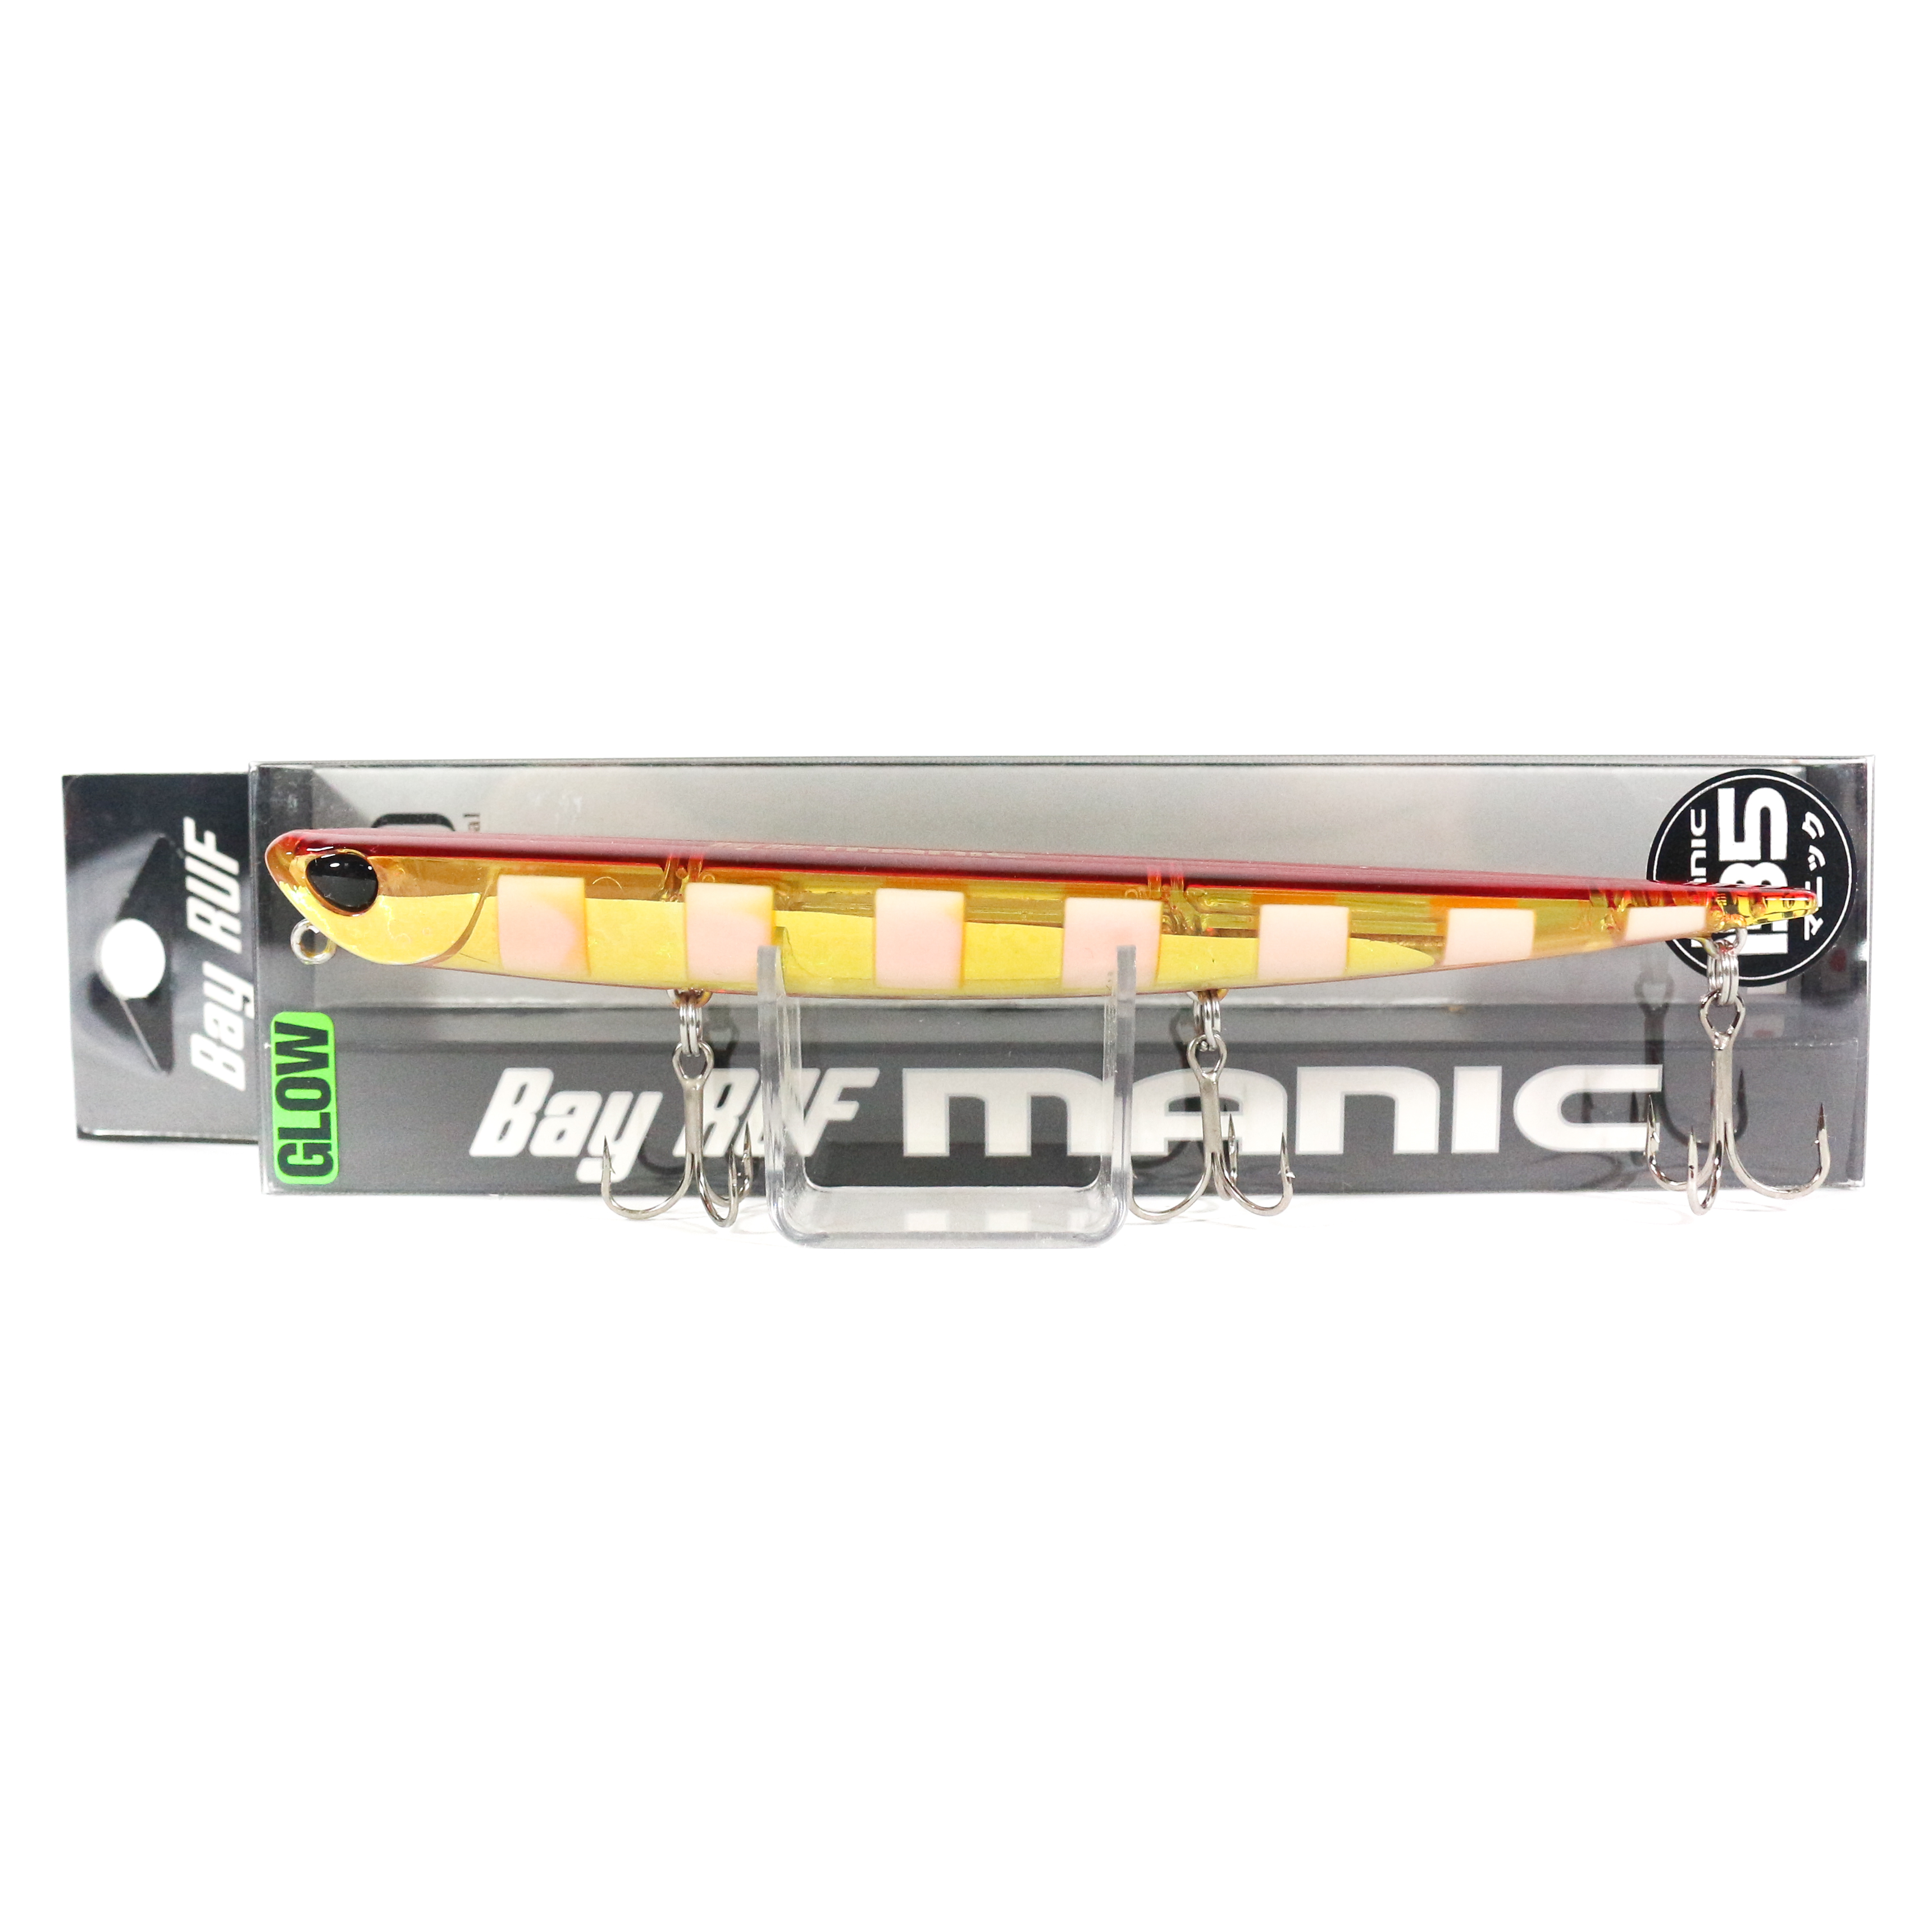 Duo Bay Ruf Manic 135 Pencil Sinking Lure CDH0359 (9305)